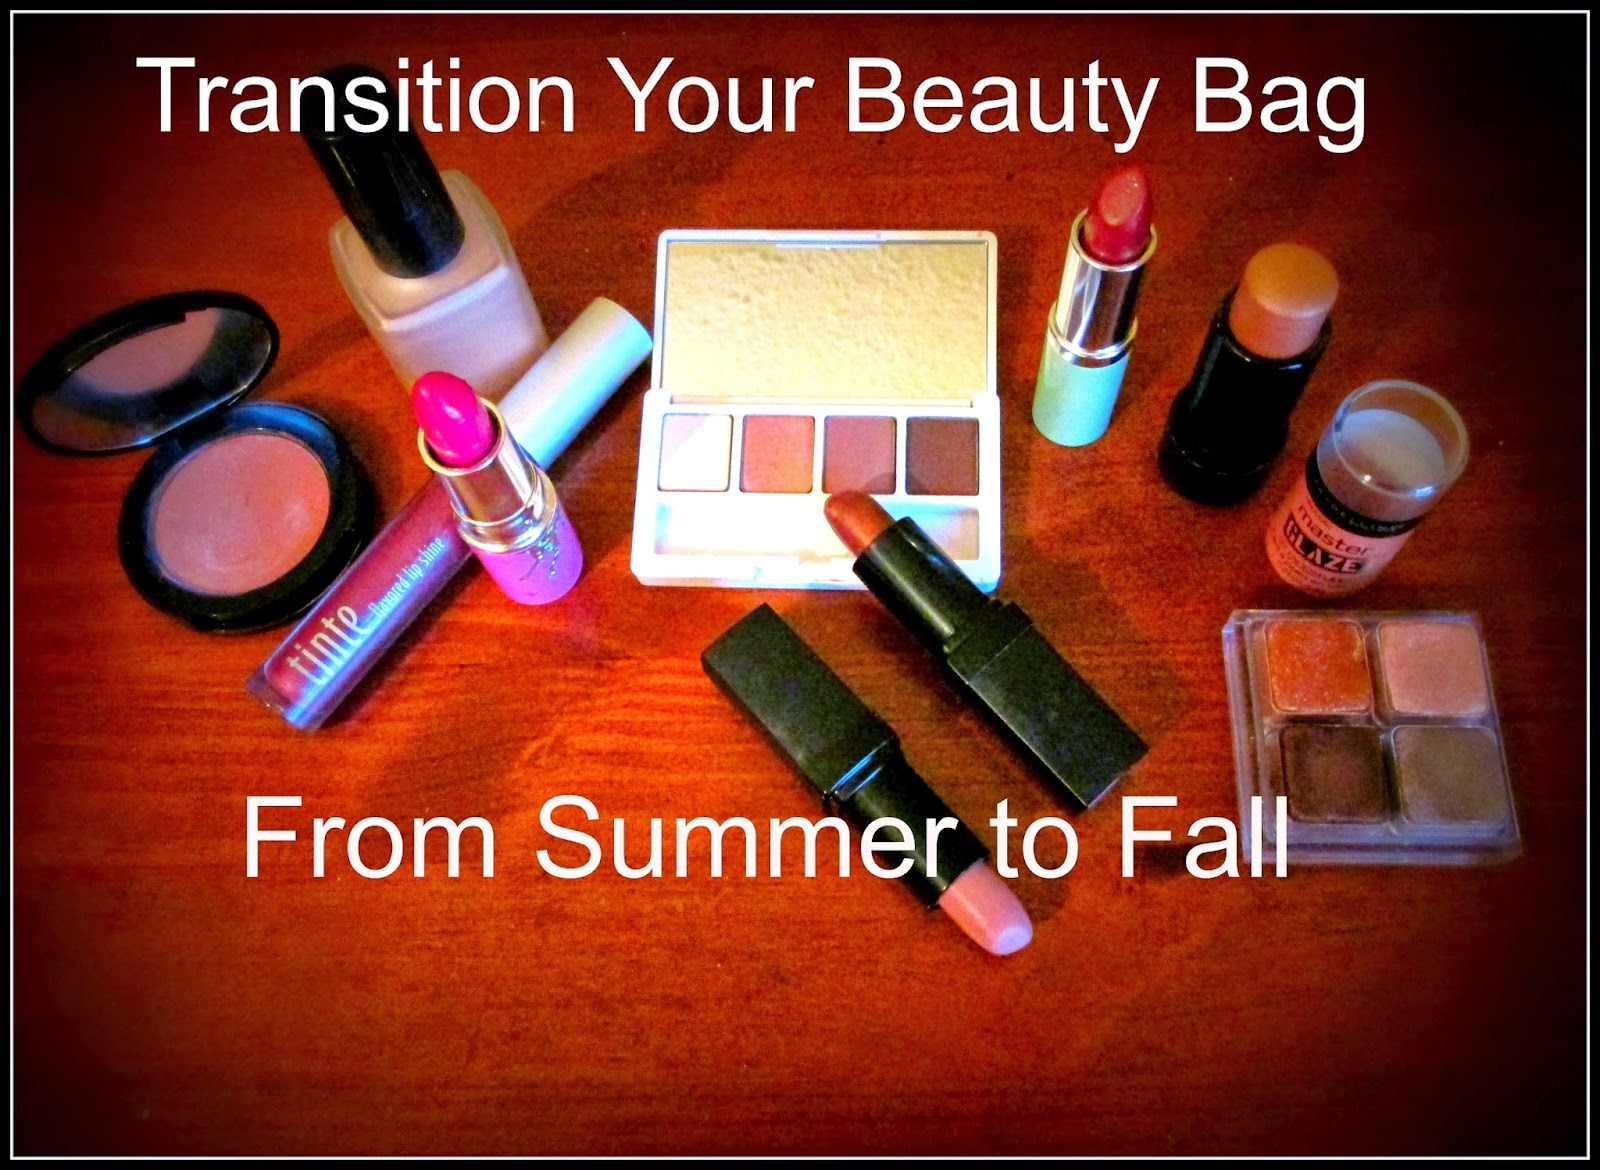 http://chrysalisglam101.blogspot.com/2014/09/transistion-your-beauty-bag-from-summer.html